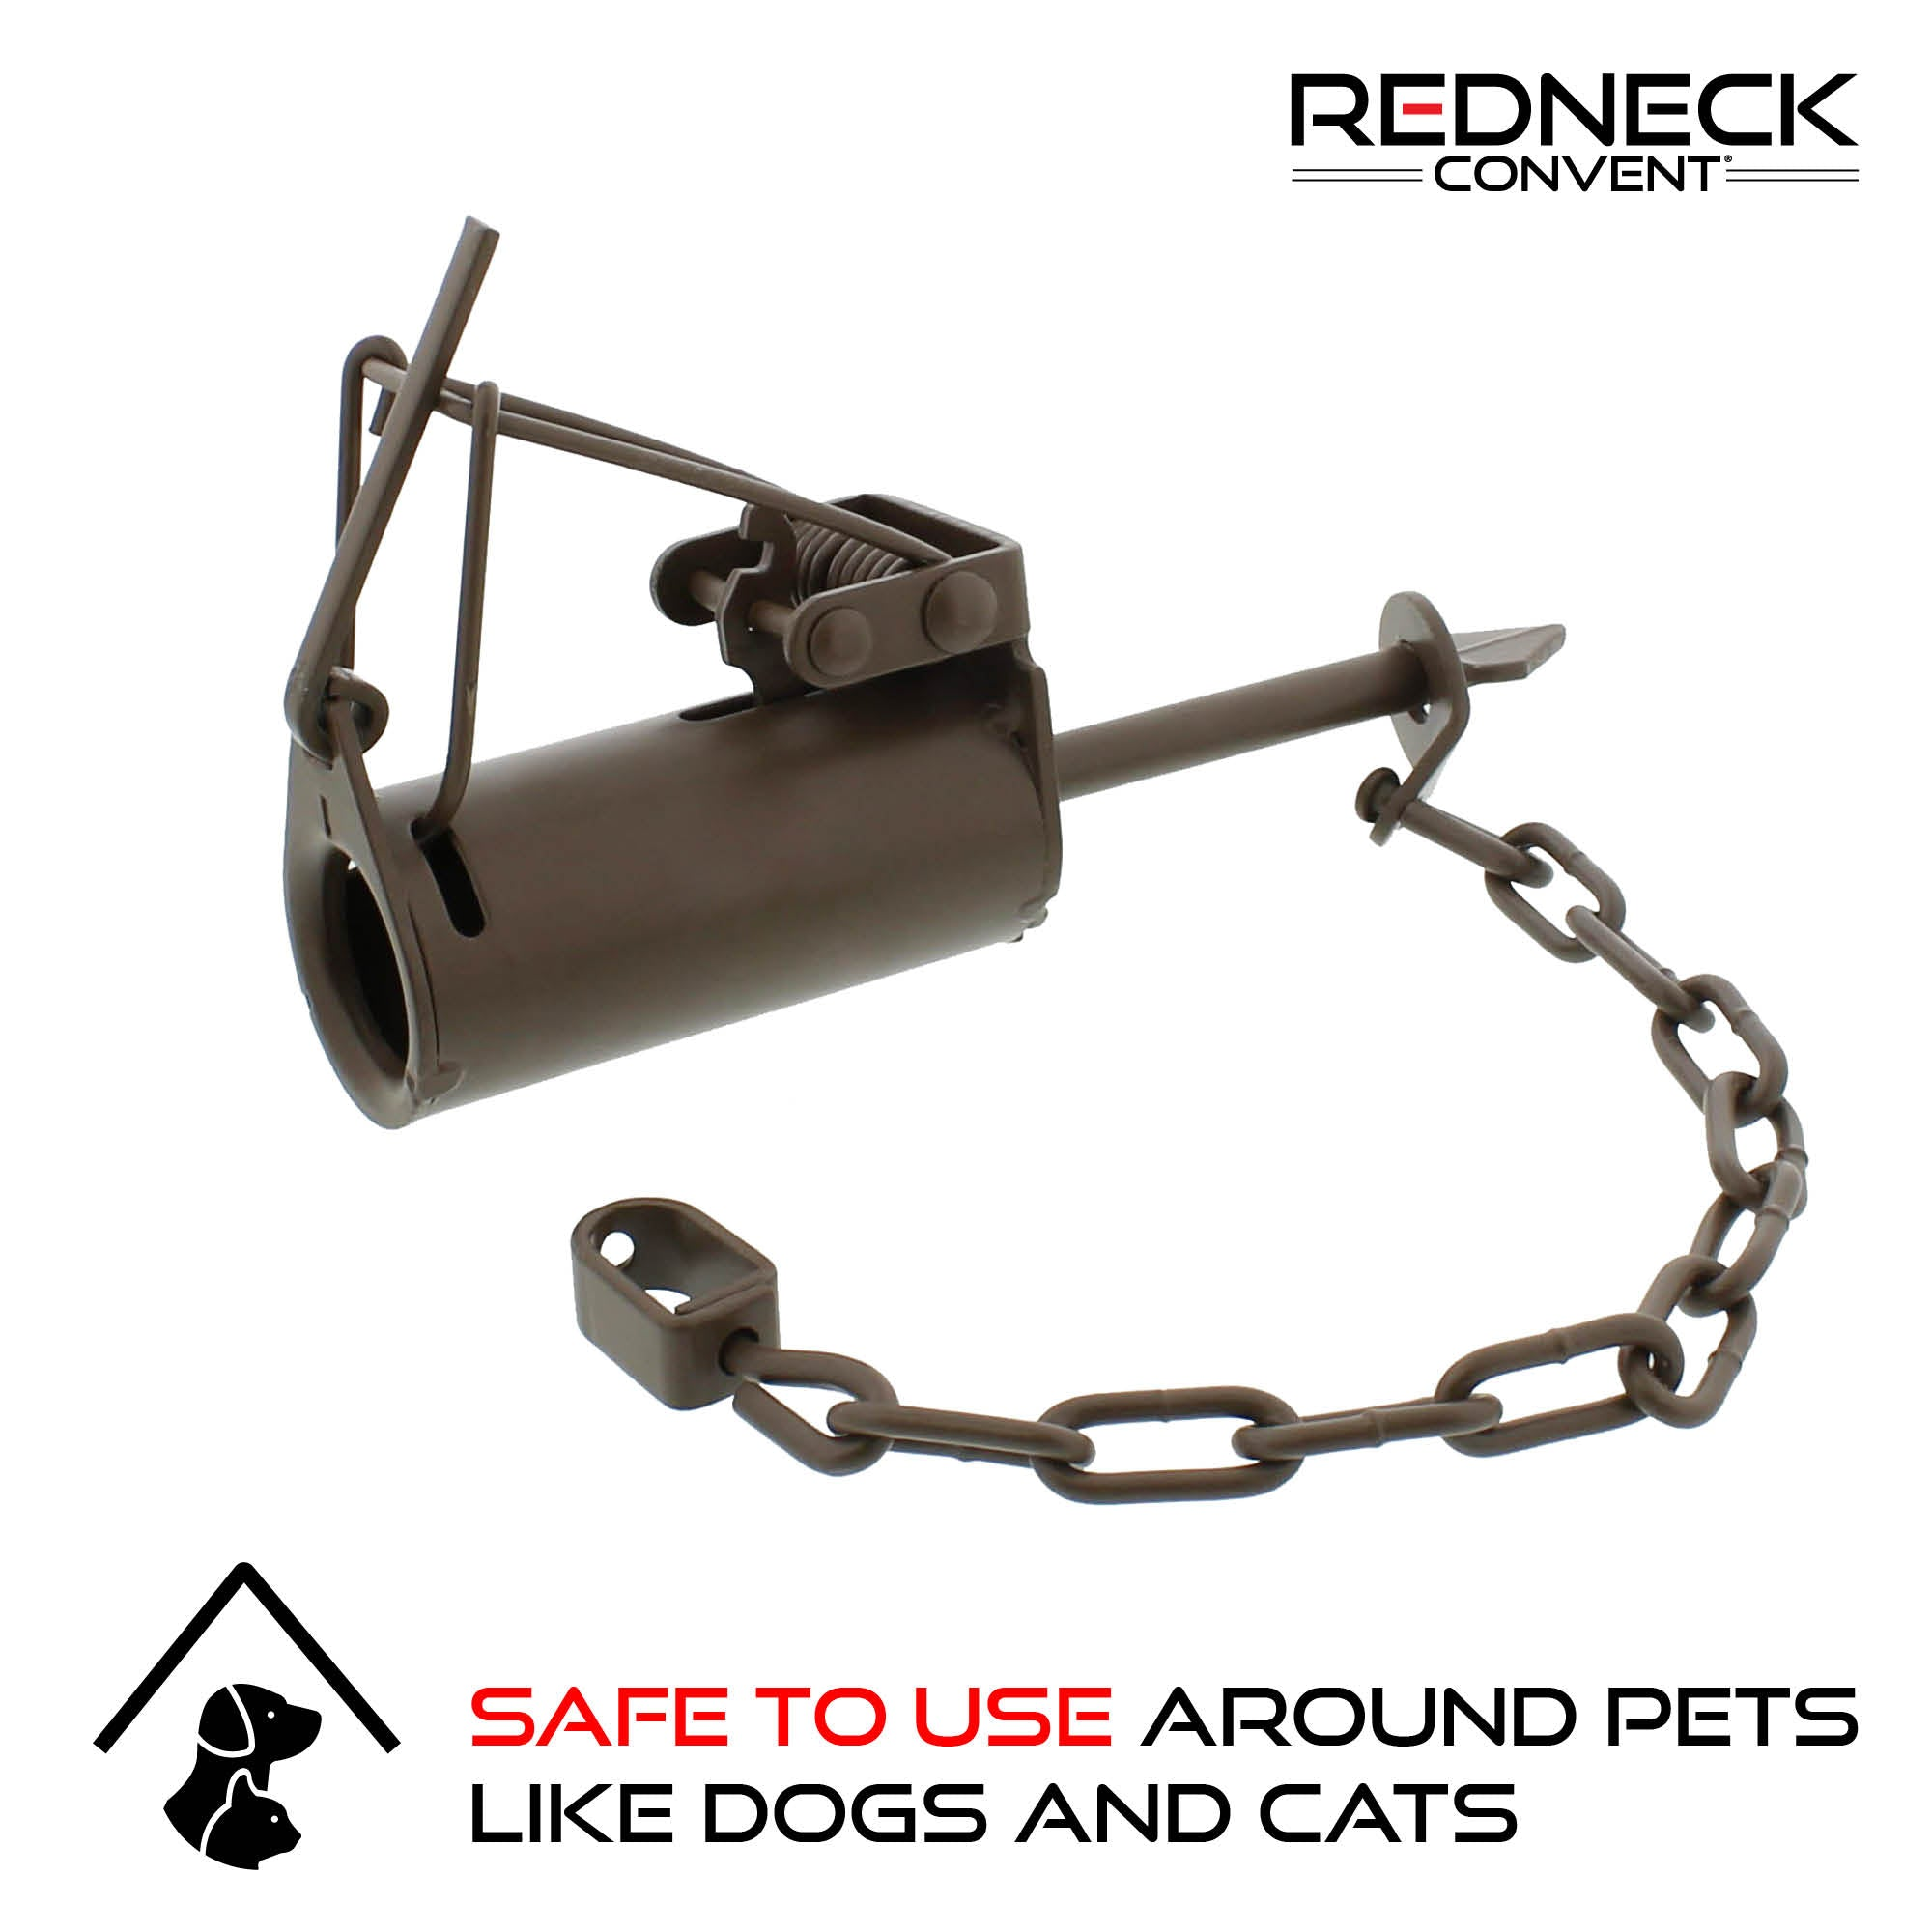 Dog-Proof DP Animal Leg Trap 8-Pack, Pet-Safe / Pet-Friendly